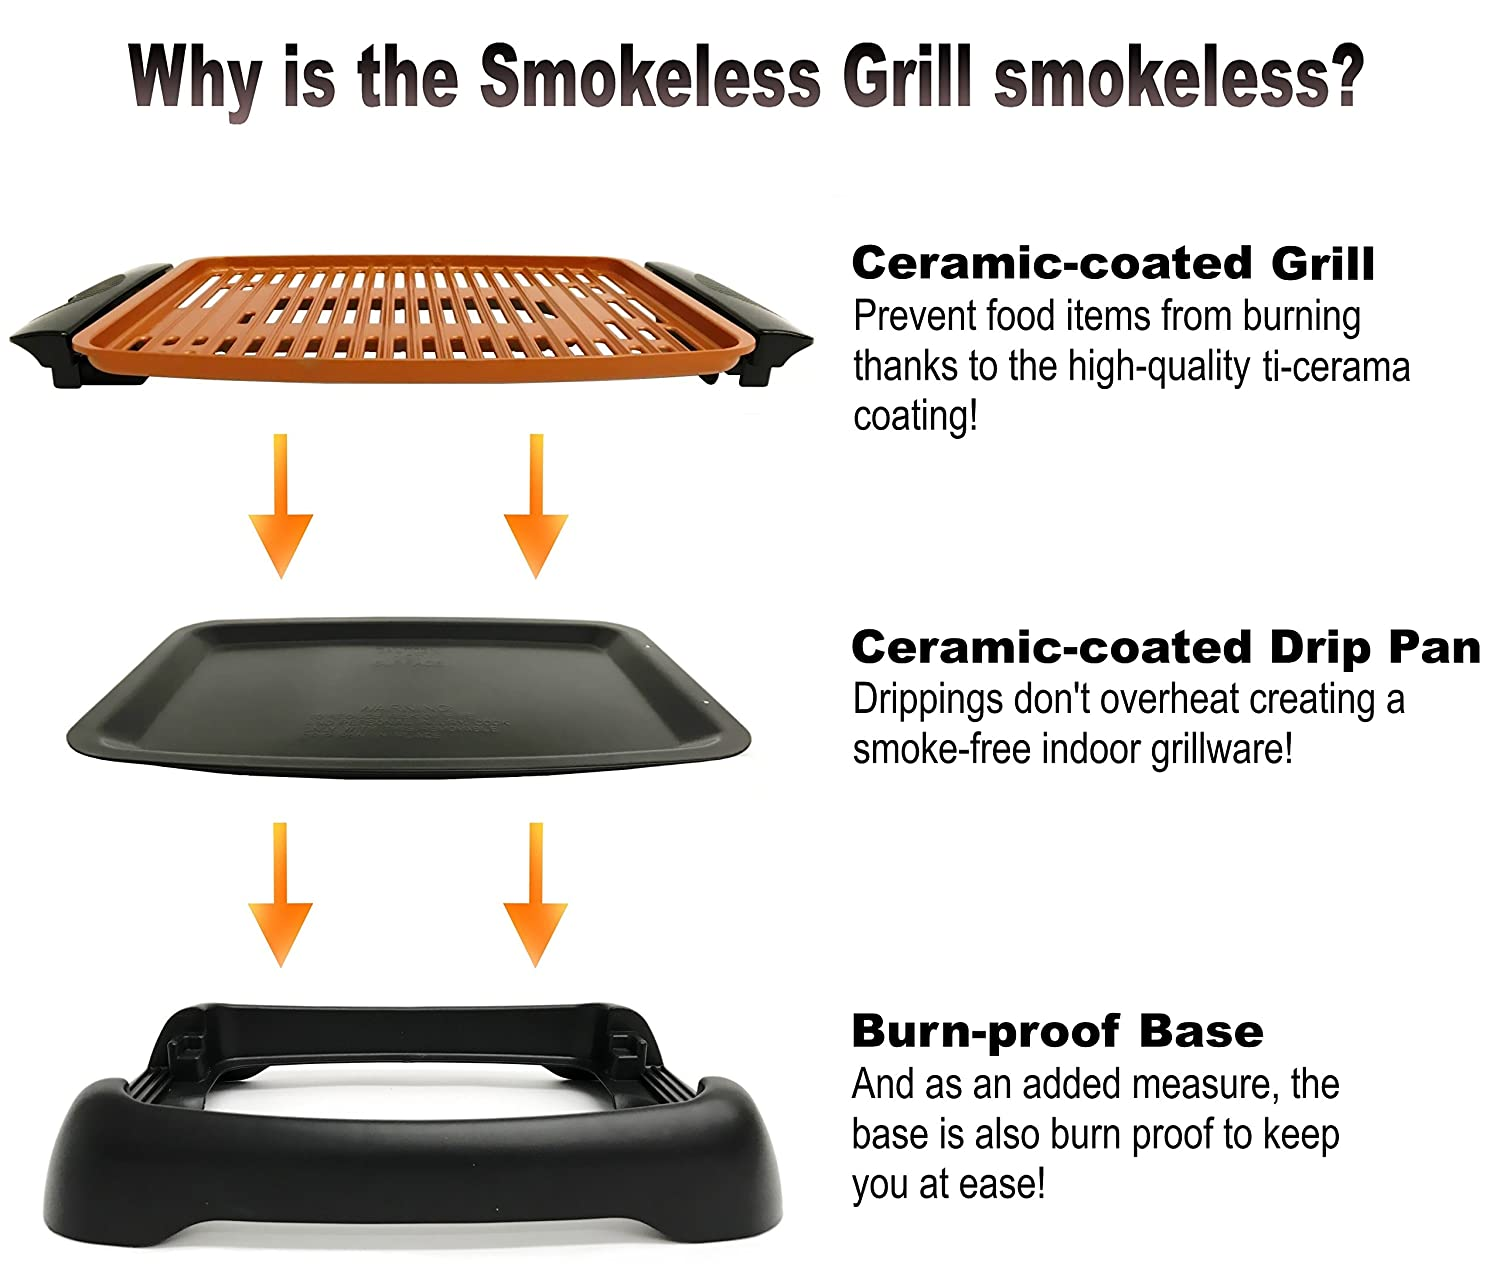 GOTHAM STEEL Smokeless Electric Grill, Griddle, and Pitchfork, Indoor BBQ and Nonstick As Seen On TV Large